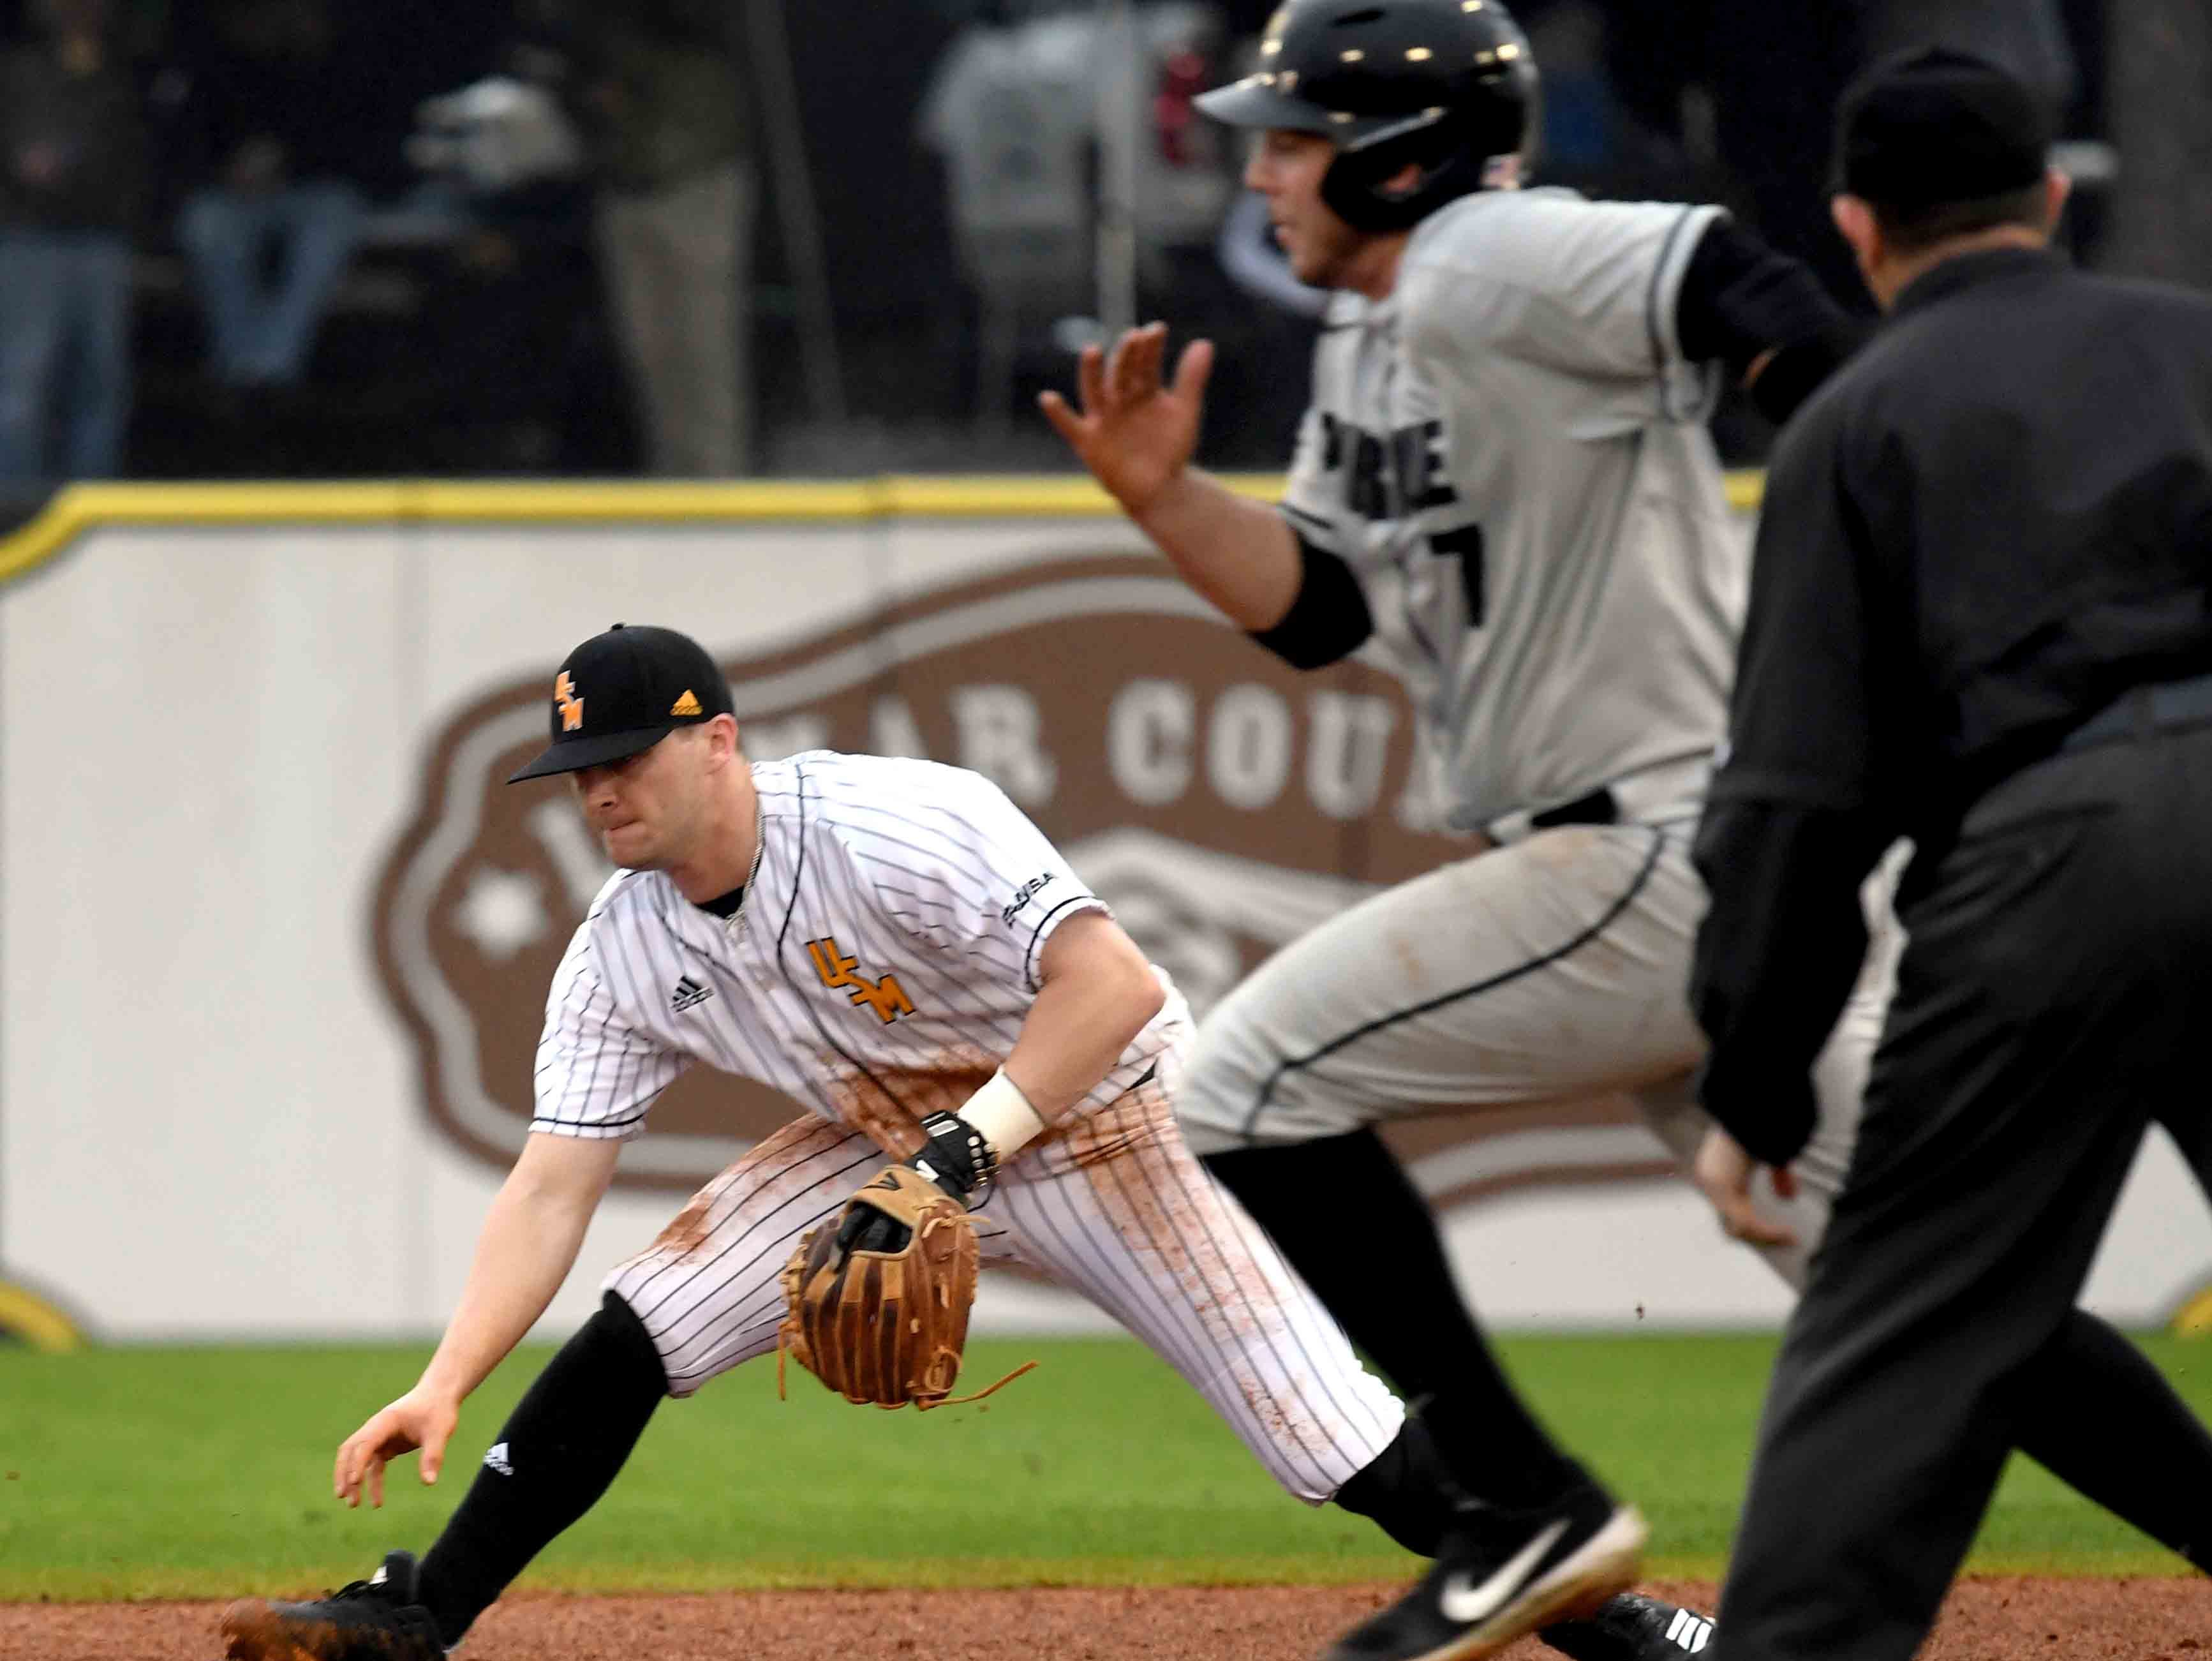 Southern Miss' Matthew Guidry reaches for the ball in the season opener against Purdue on Friday, February 15, 2019.